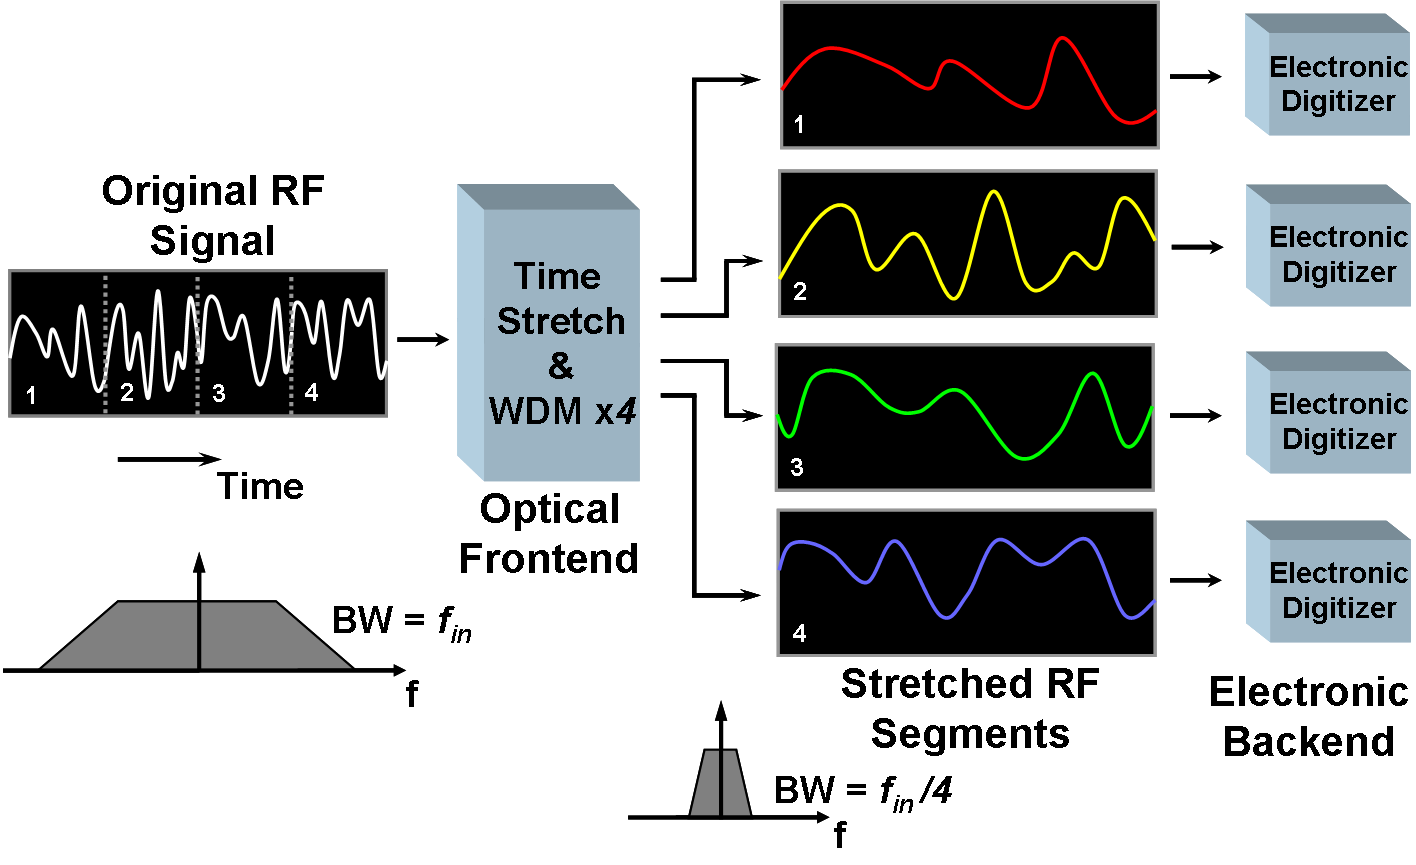 Time Stretch Analog To Digital Converter Wikipedia